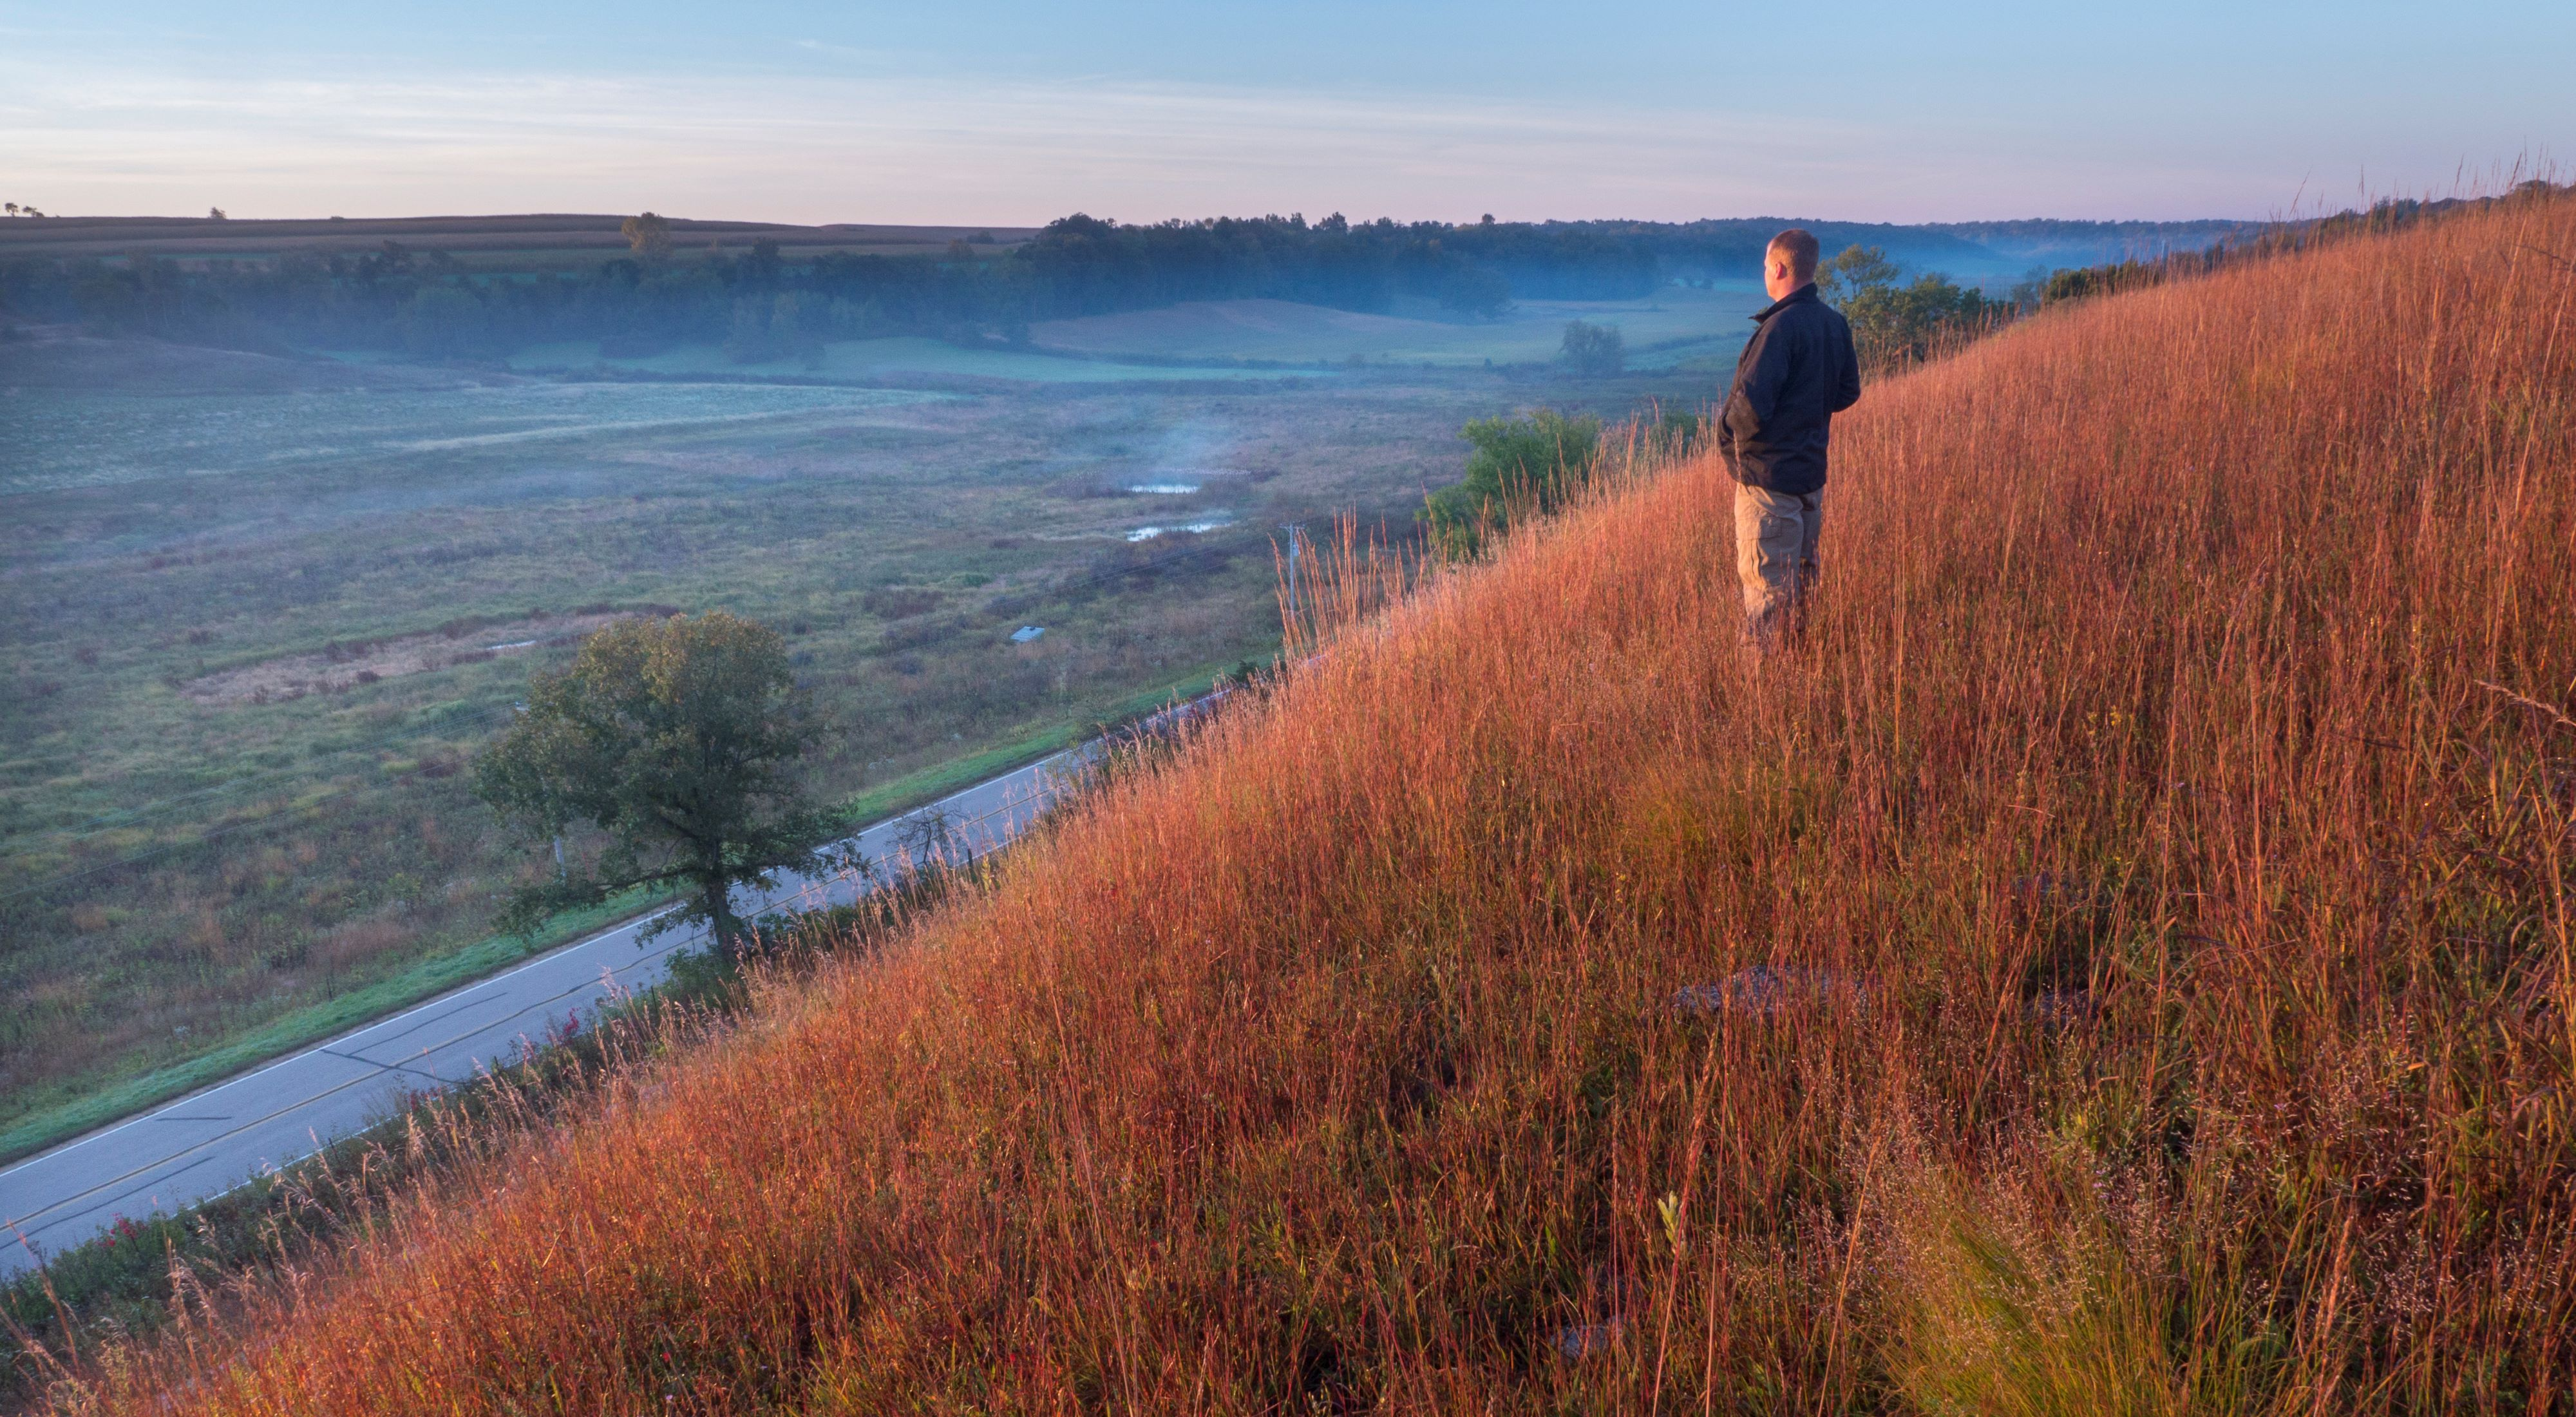 Man stands in a hillside prairie on a hillside overlooking a valley with hills in the distance as the sun sets.